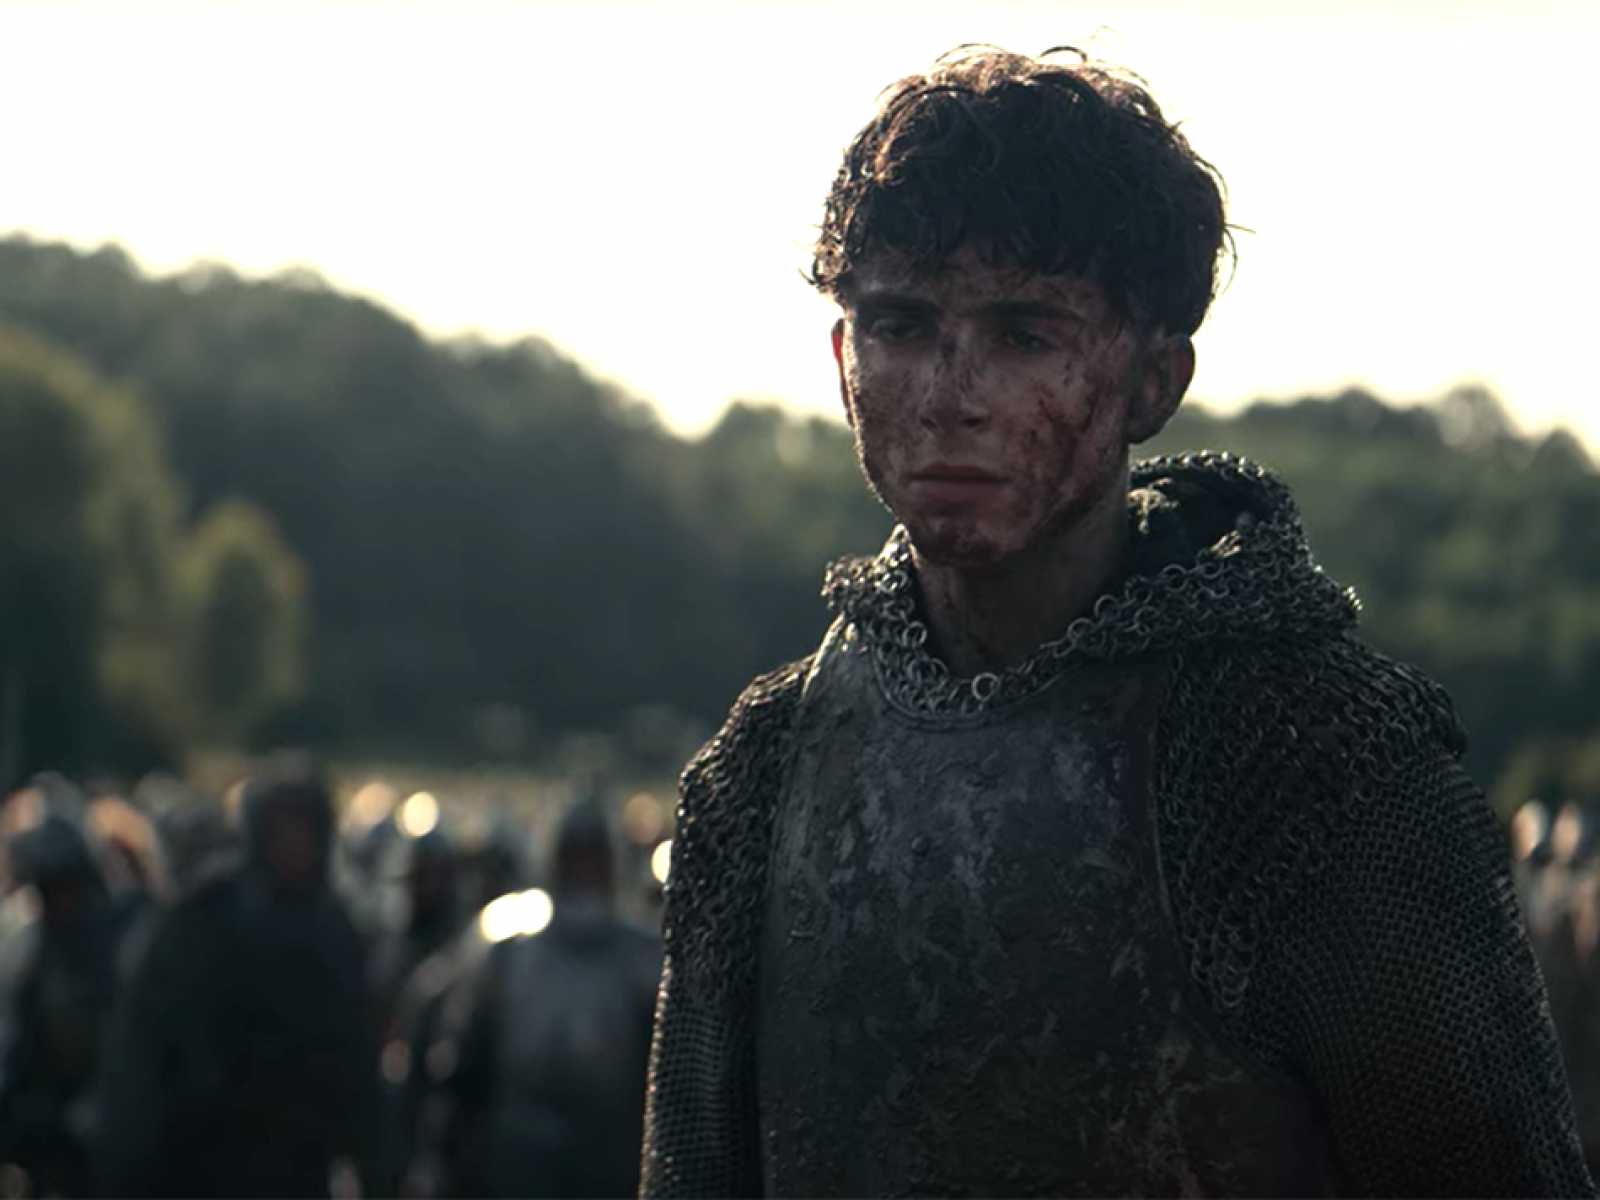 King Henry V stands muddied in front of his troops after battle.